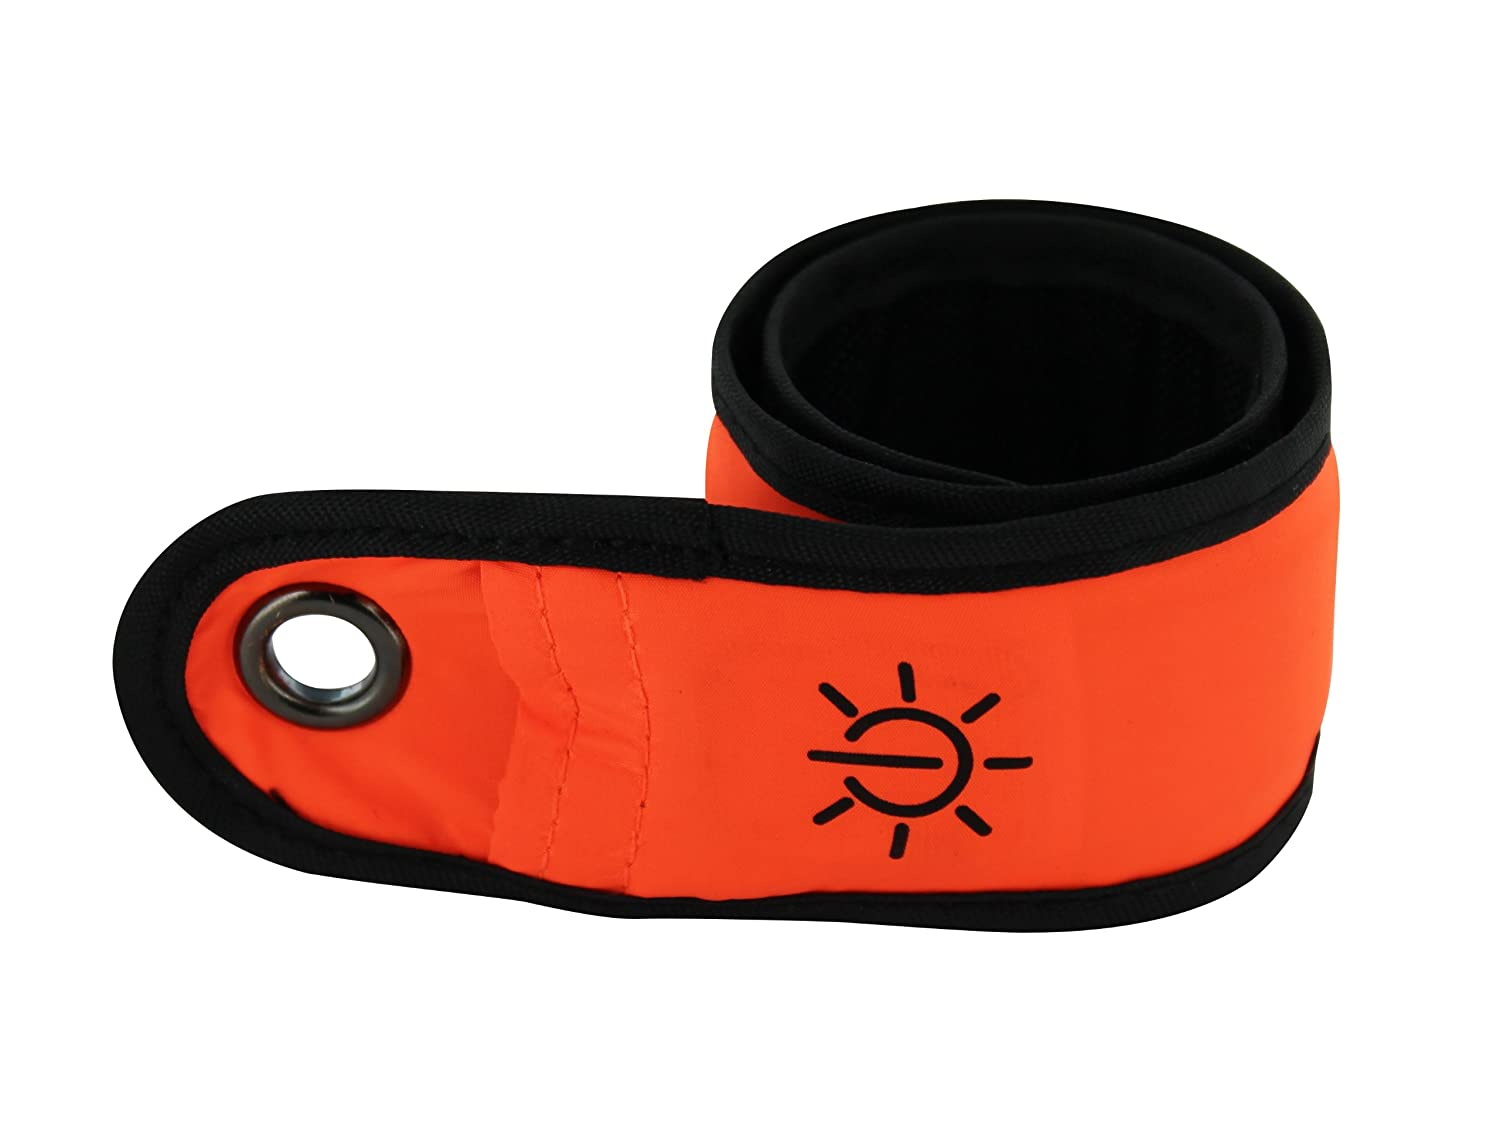 Brassard Wantalis Illumin8 (orange) Cyclisme